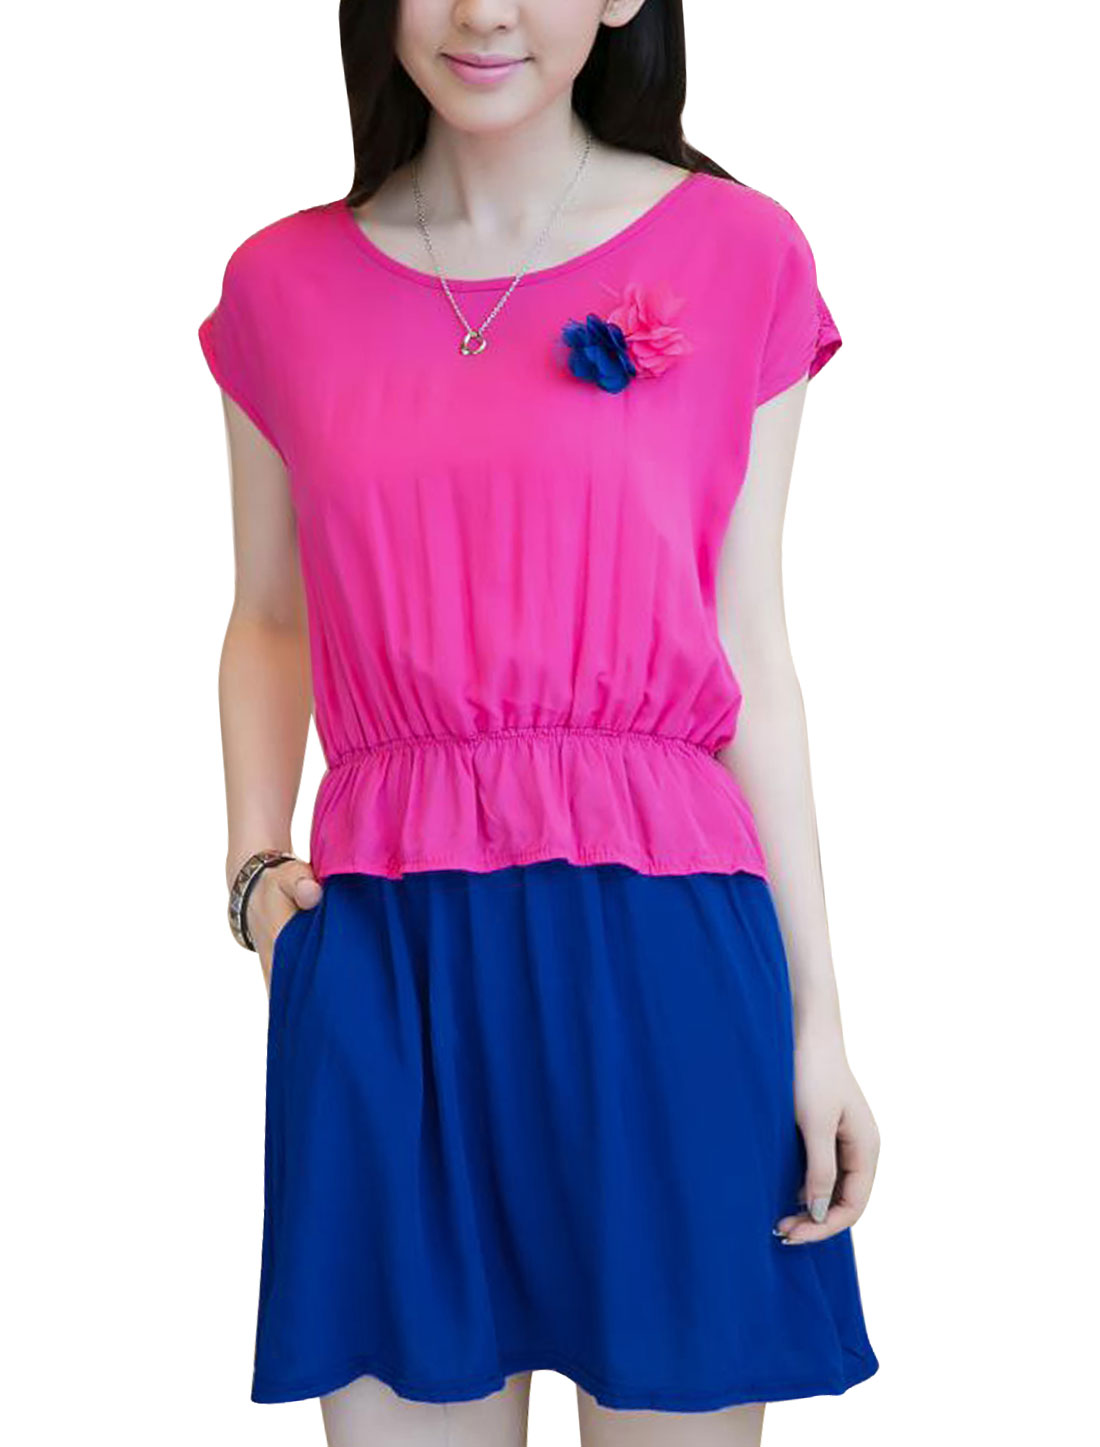 Ladies Round Neck Elastic Waist Brooch Decor Peplum Dress Fuchsia Blue XS